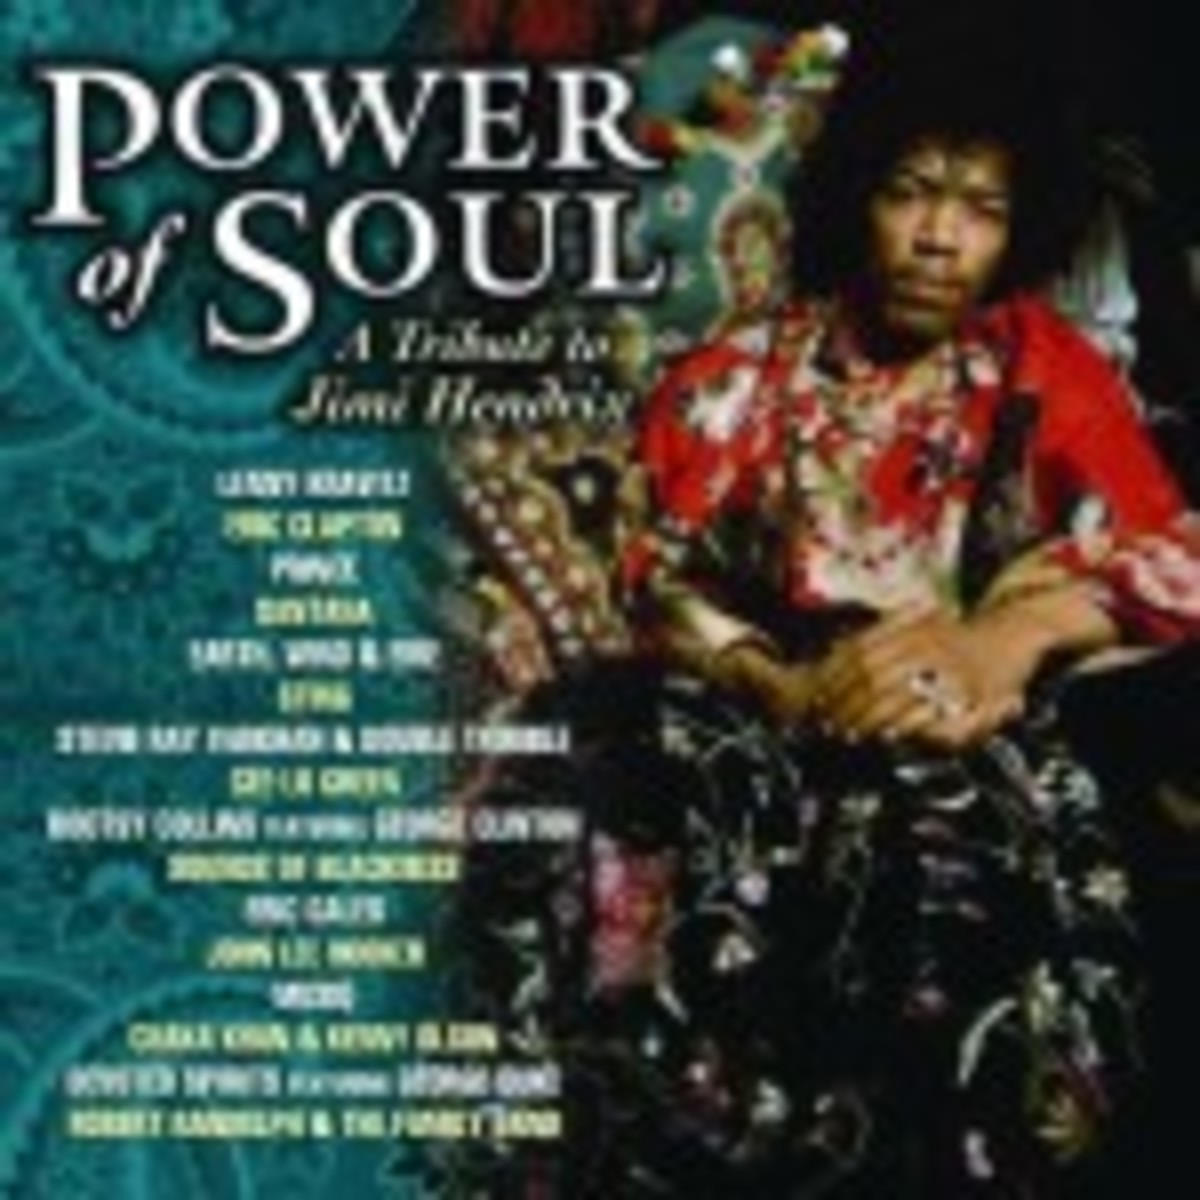 Power of Soul A Tribute to Jimi Hendrix